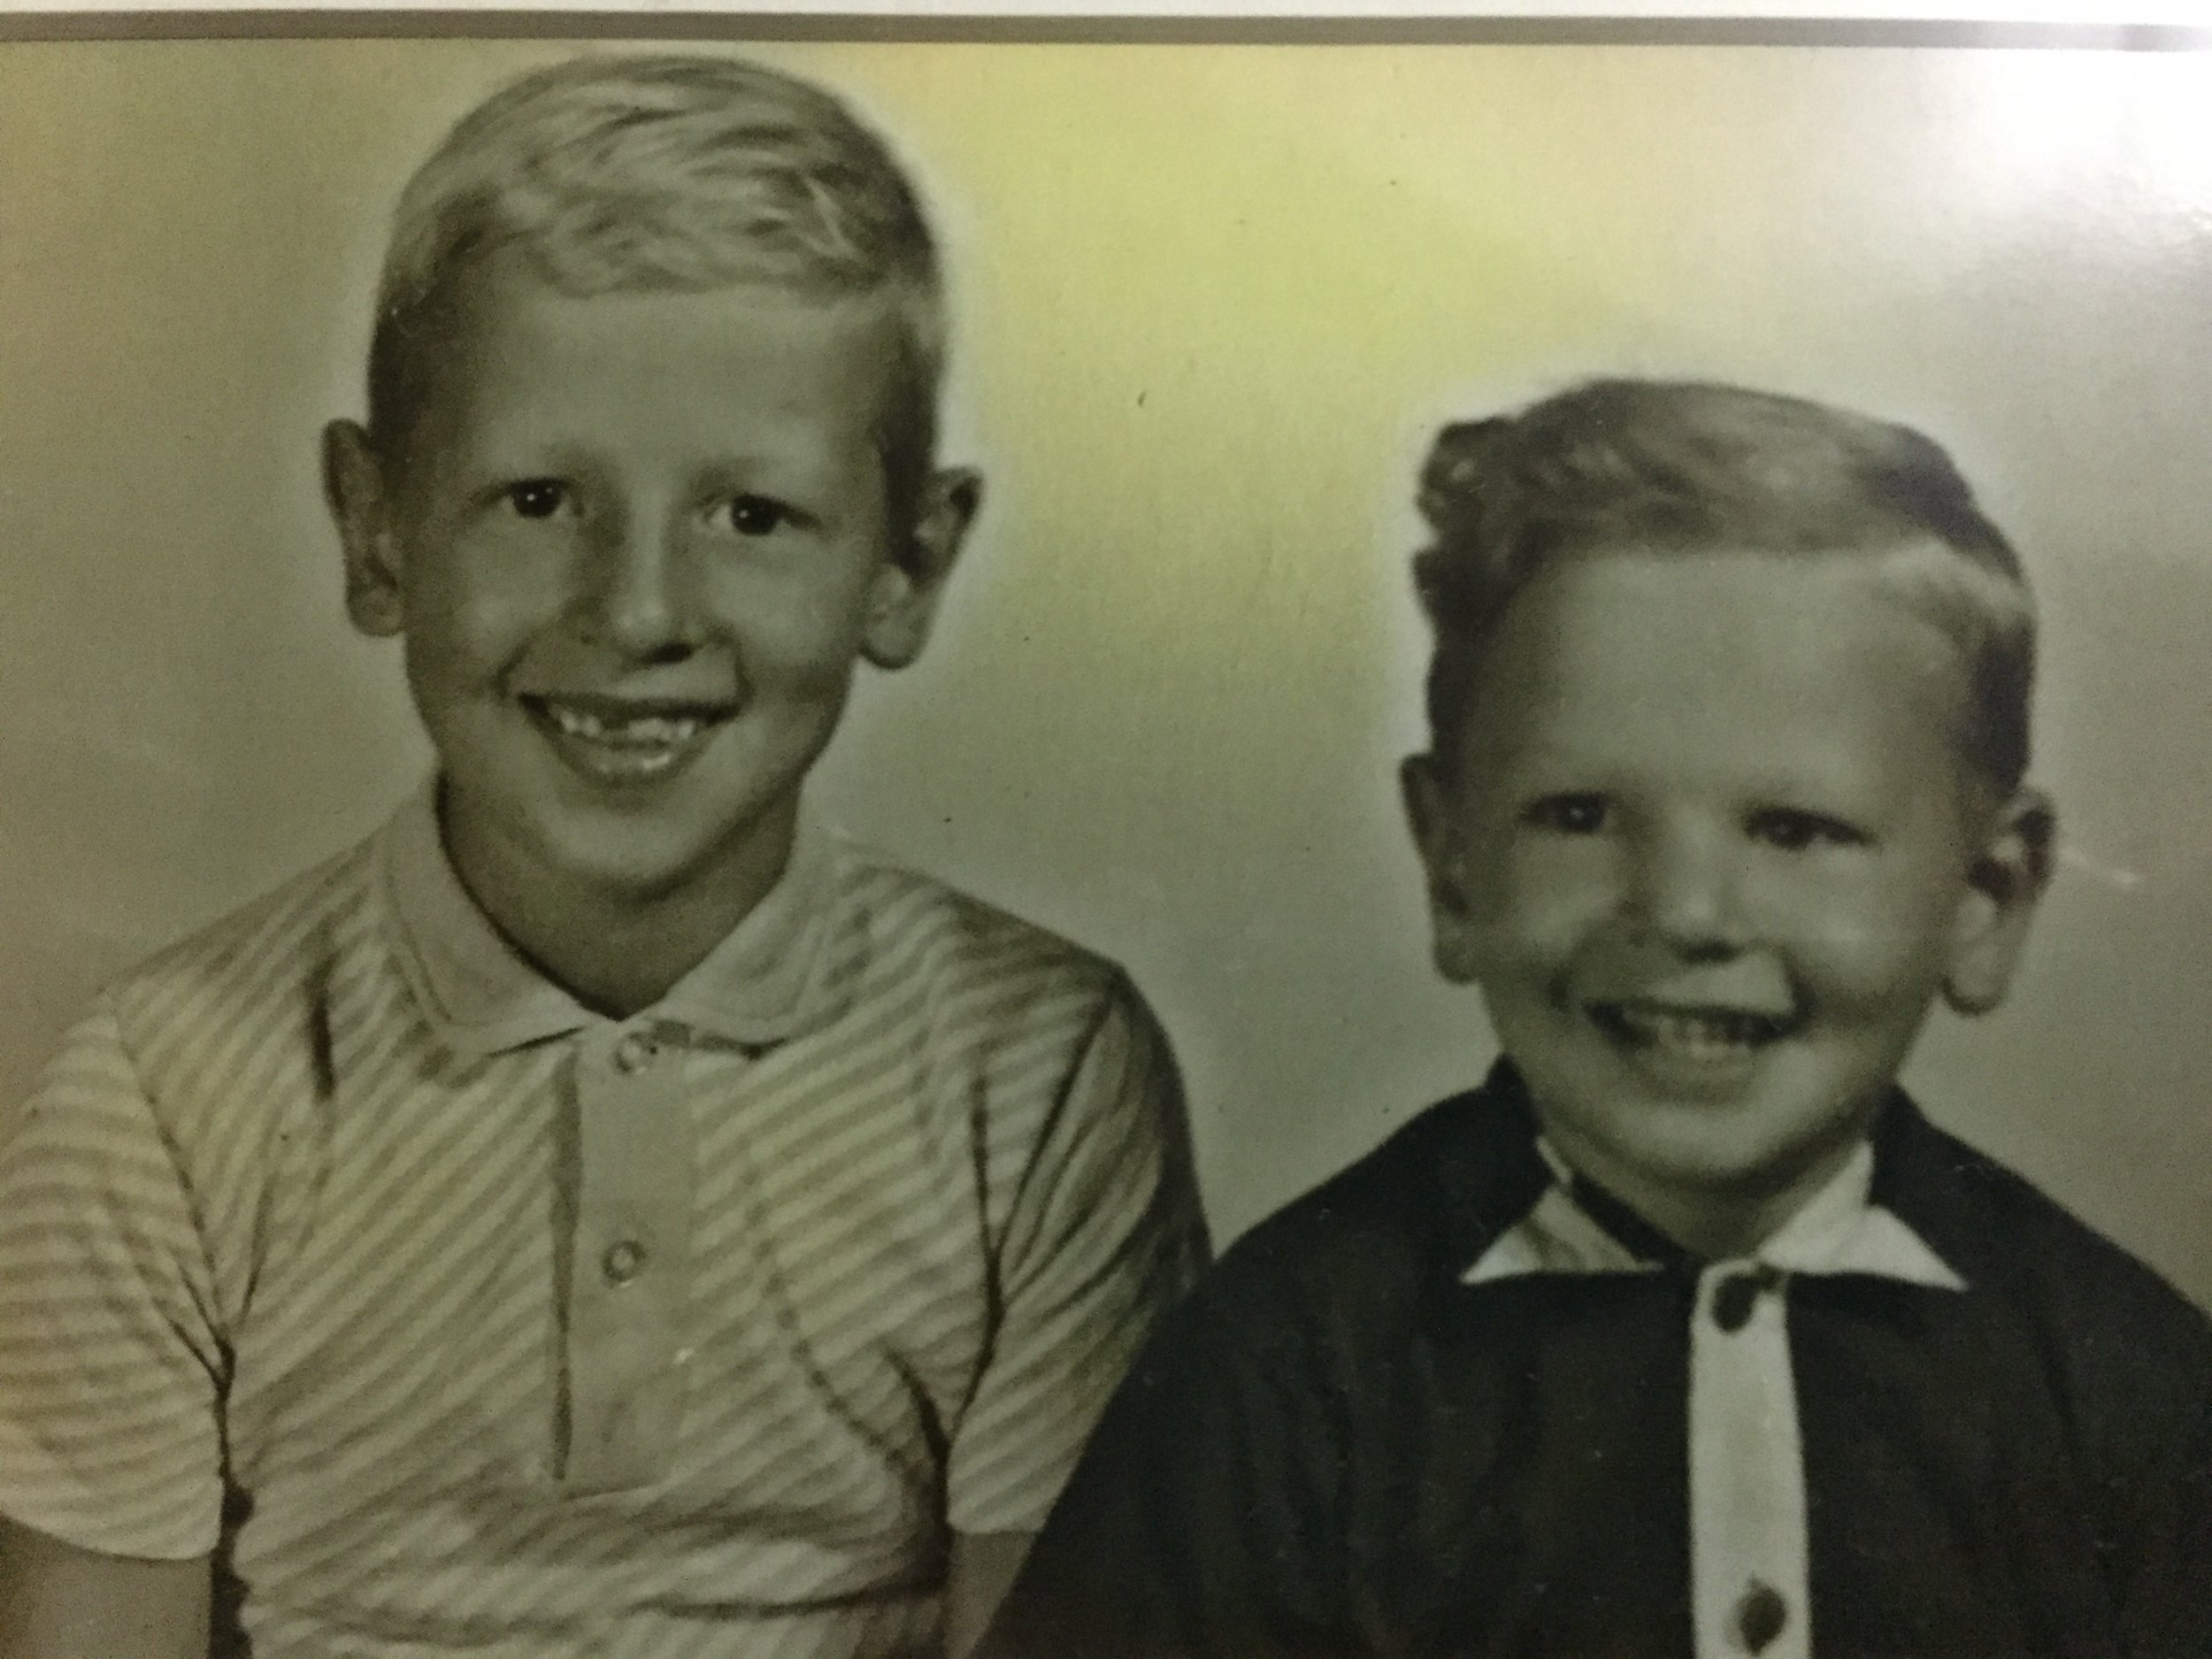 Duncan and wallace as boys.JPG